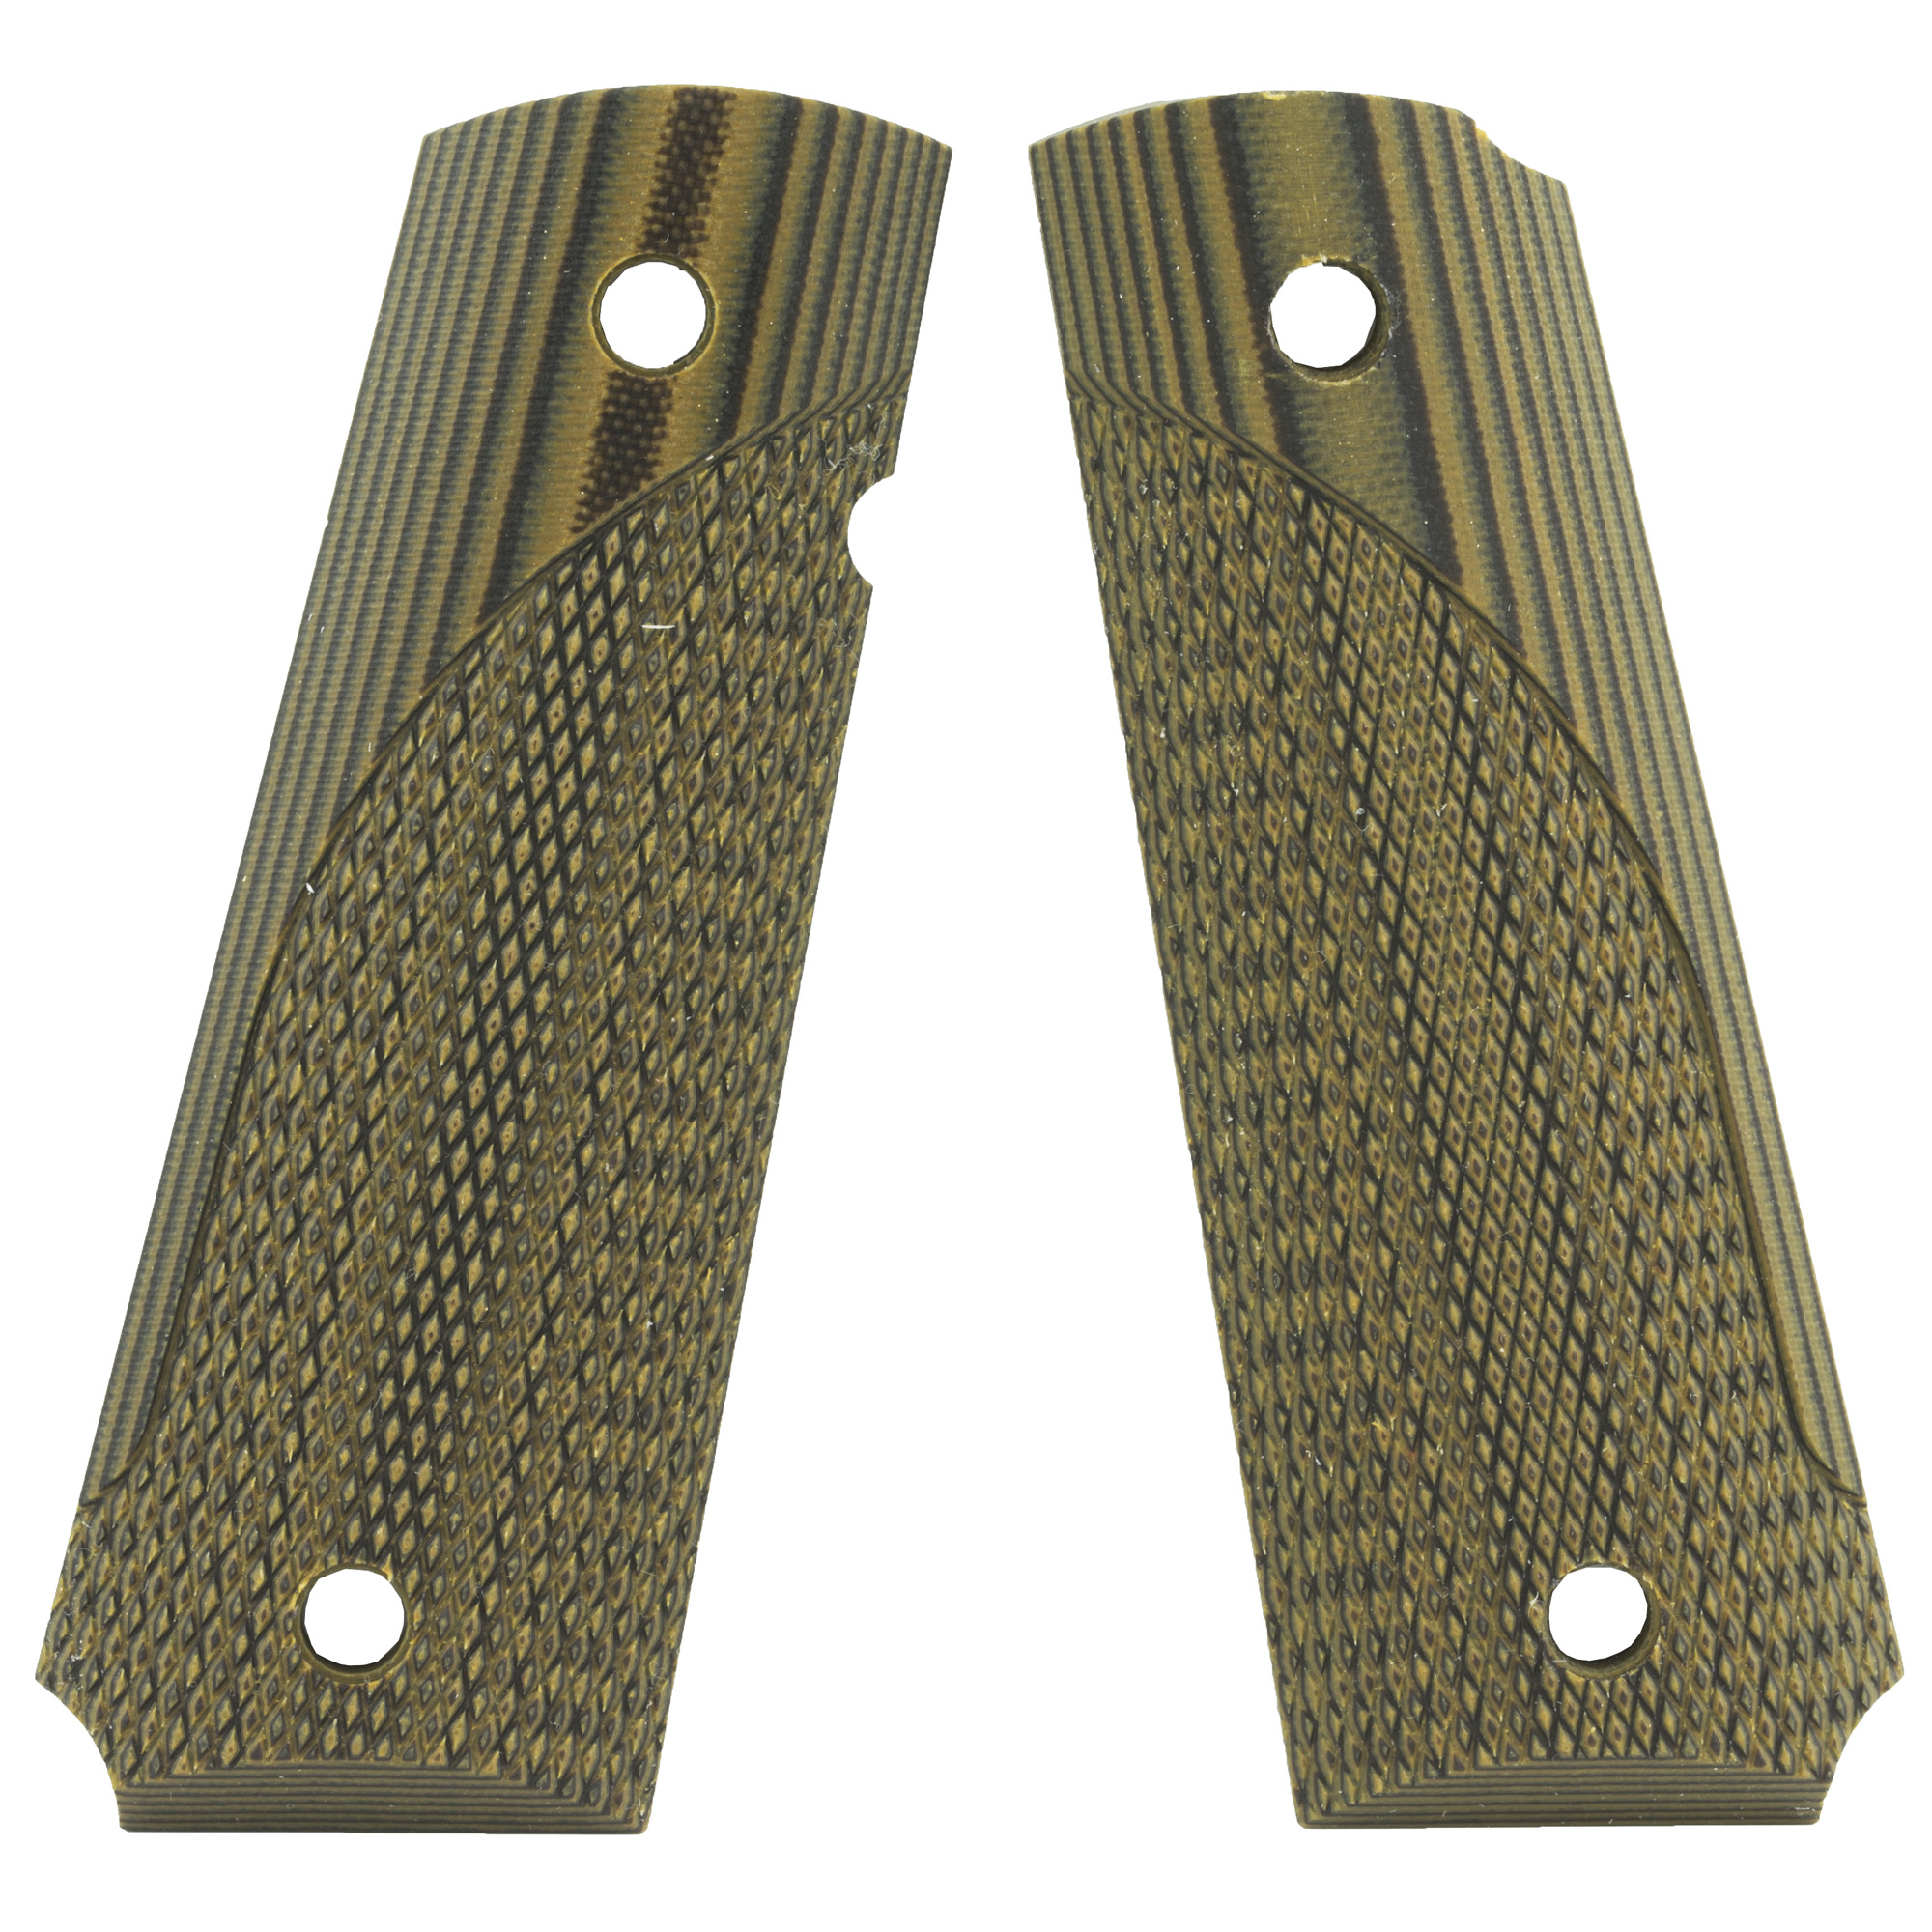 """G-10 material is a fiberglass based epoxy resin laminate. It is an extremely tough and durable material that is impervious to moisture"""" weather or chemicals"""" making it a perfect material for handgun grips. The multiple layered construction allows the use of different colors to be added to the semi-auto grips"""" creating attractive patterns as it is machined. Their Pachmayr G-10 Tactical pistol grips are available in two textures"""" their coarse Grappler pattern or fine checkered"""" and two color patterns"""" green/black and grey/black."""